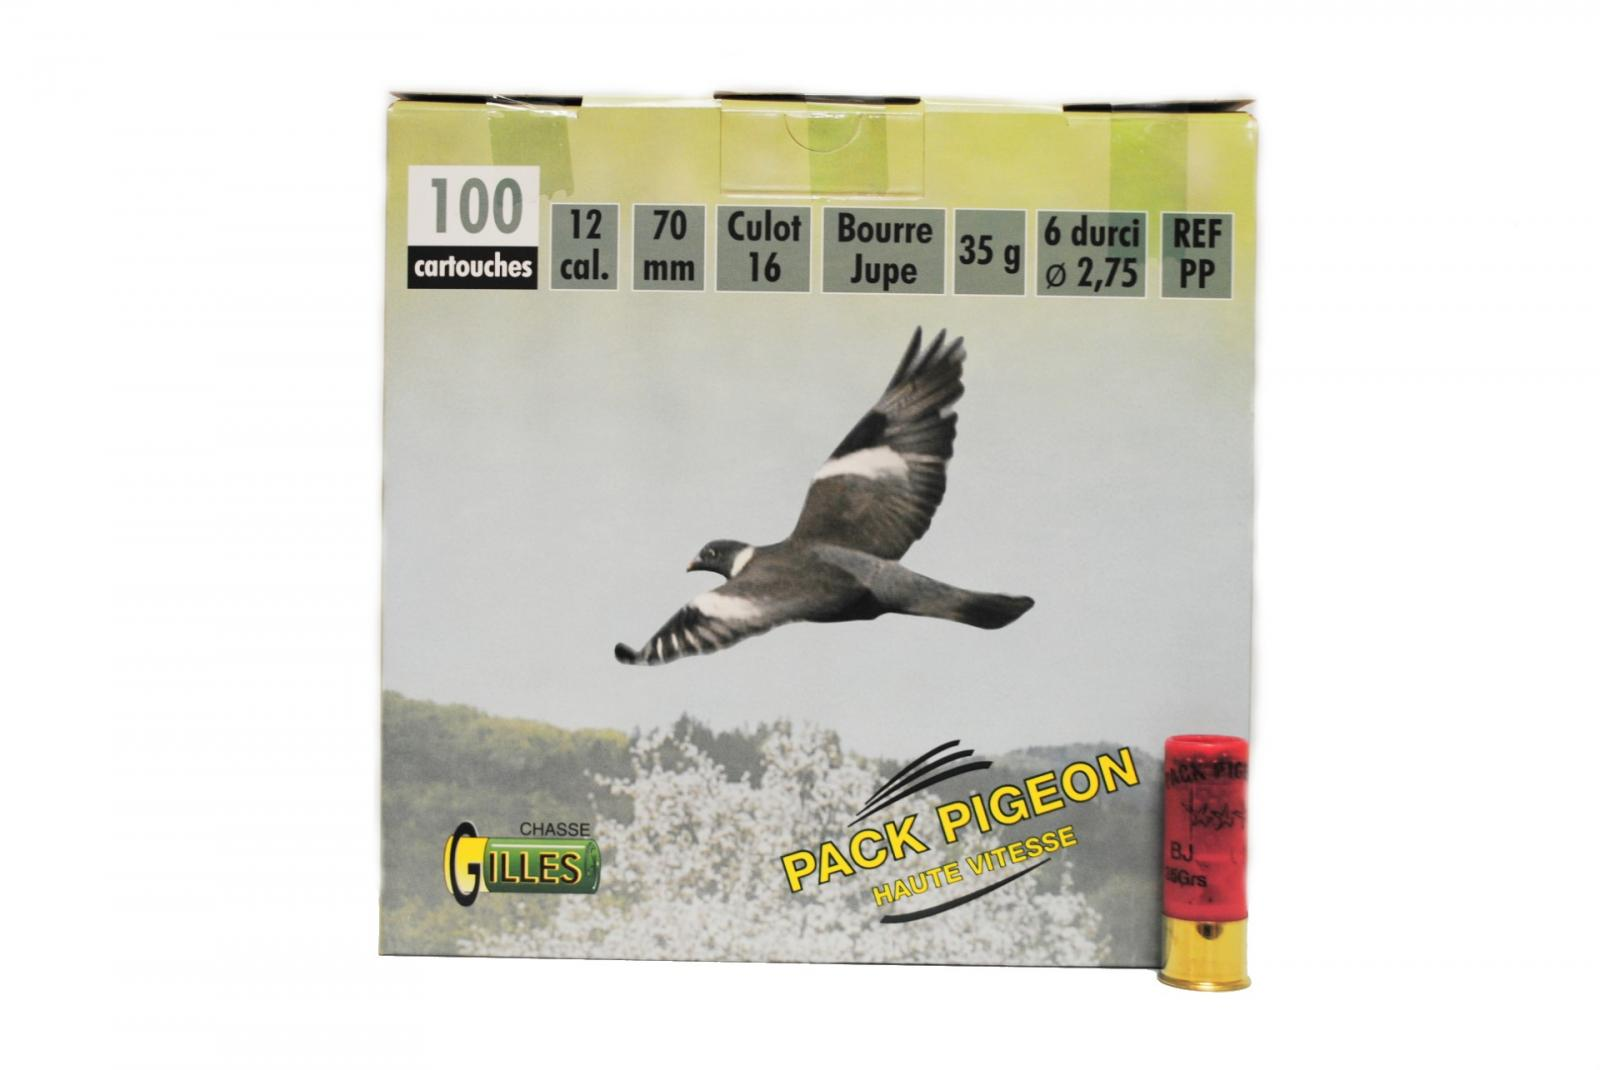 Pack Pigeon 12/70 grand culot 35 grs PP